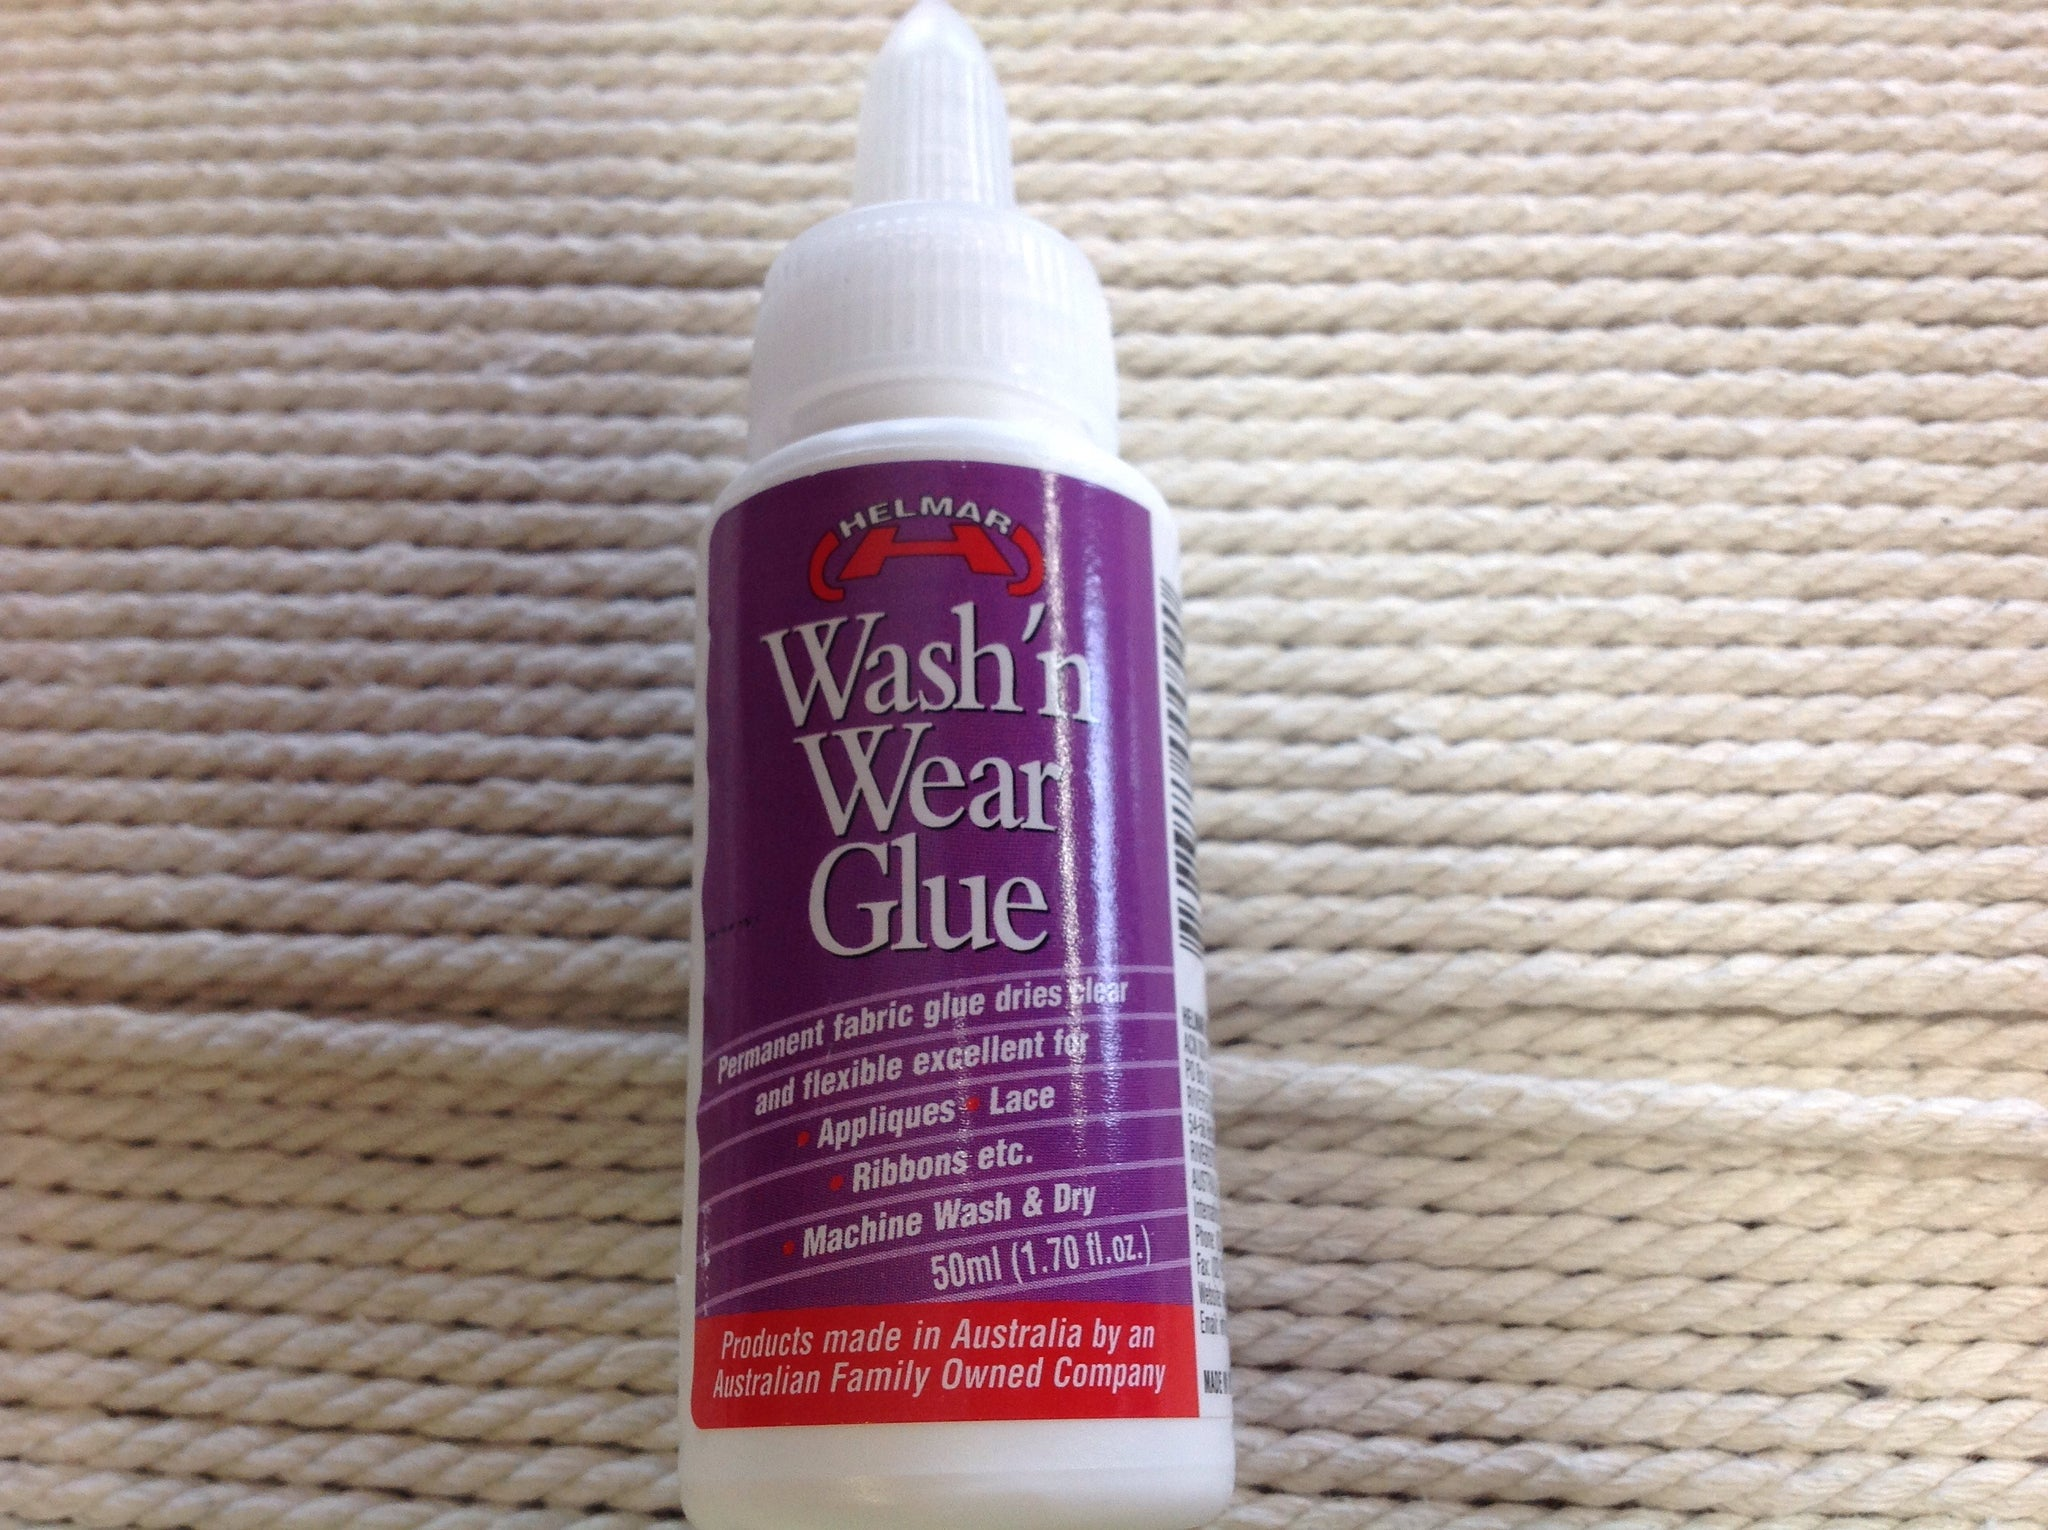 Wash'n Wear Glue